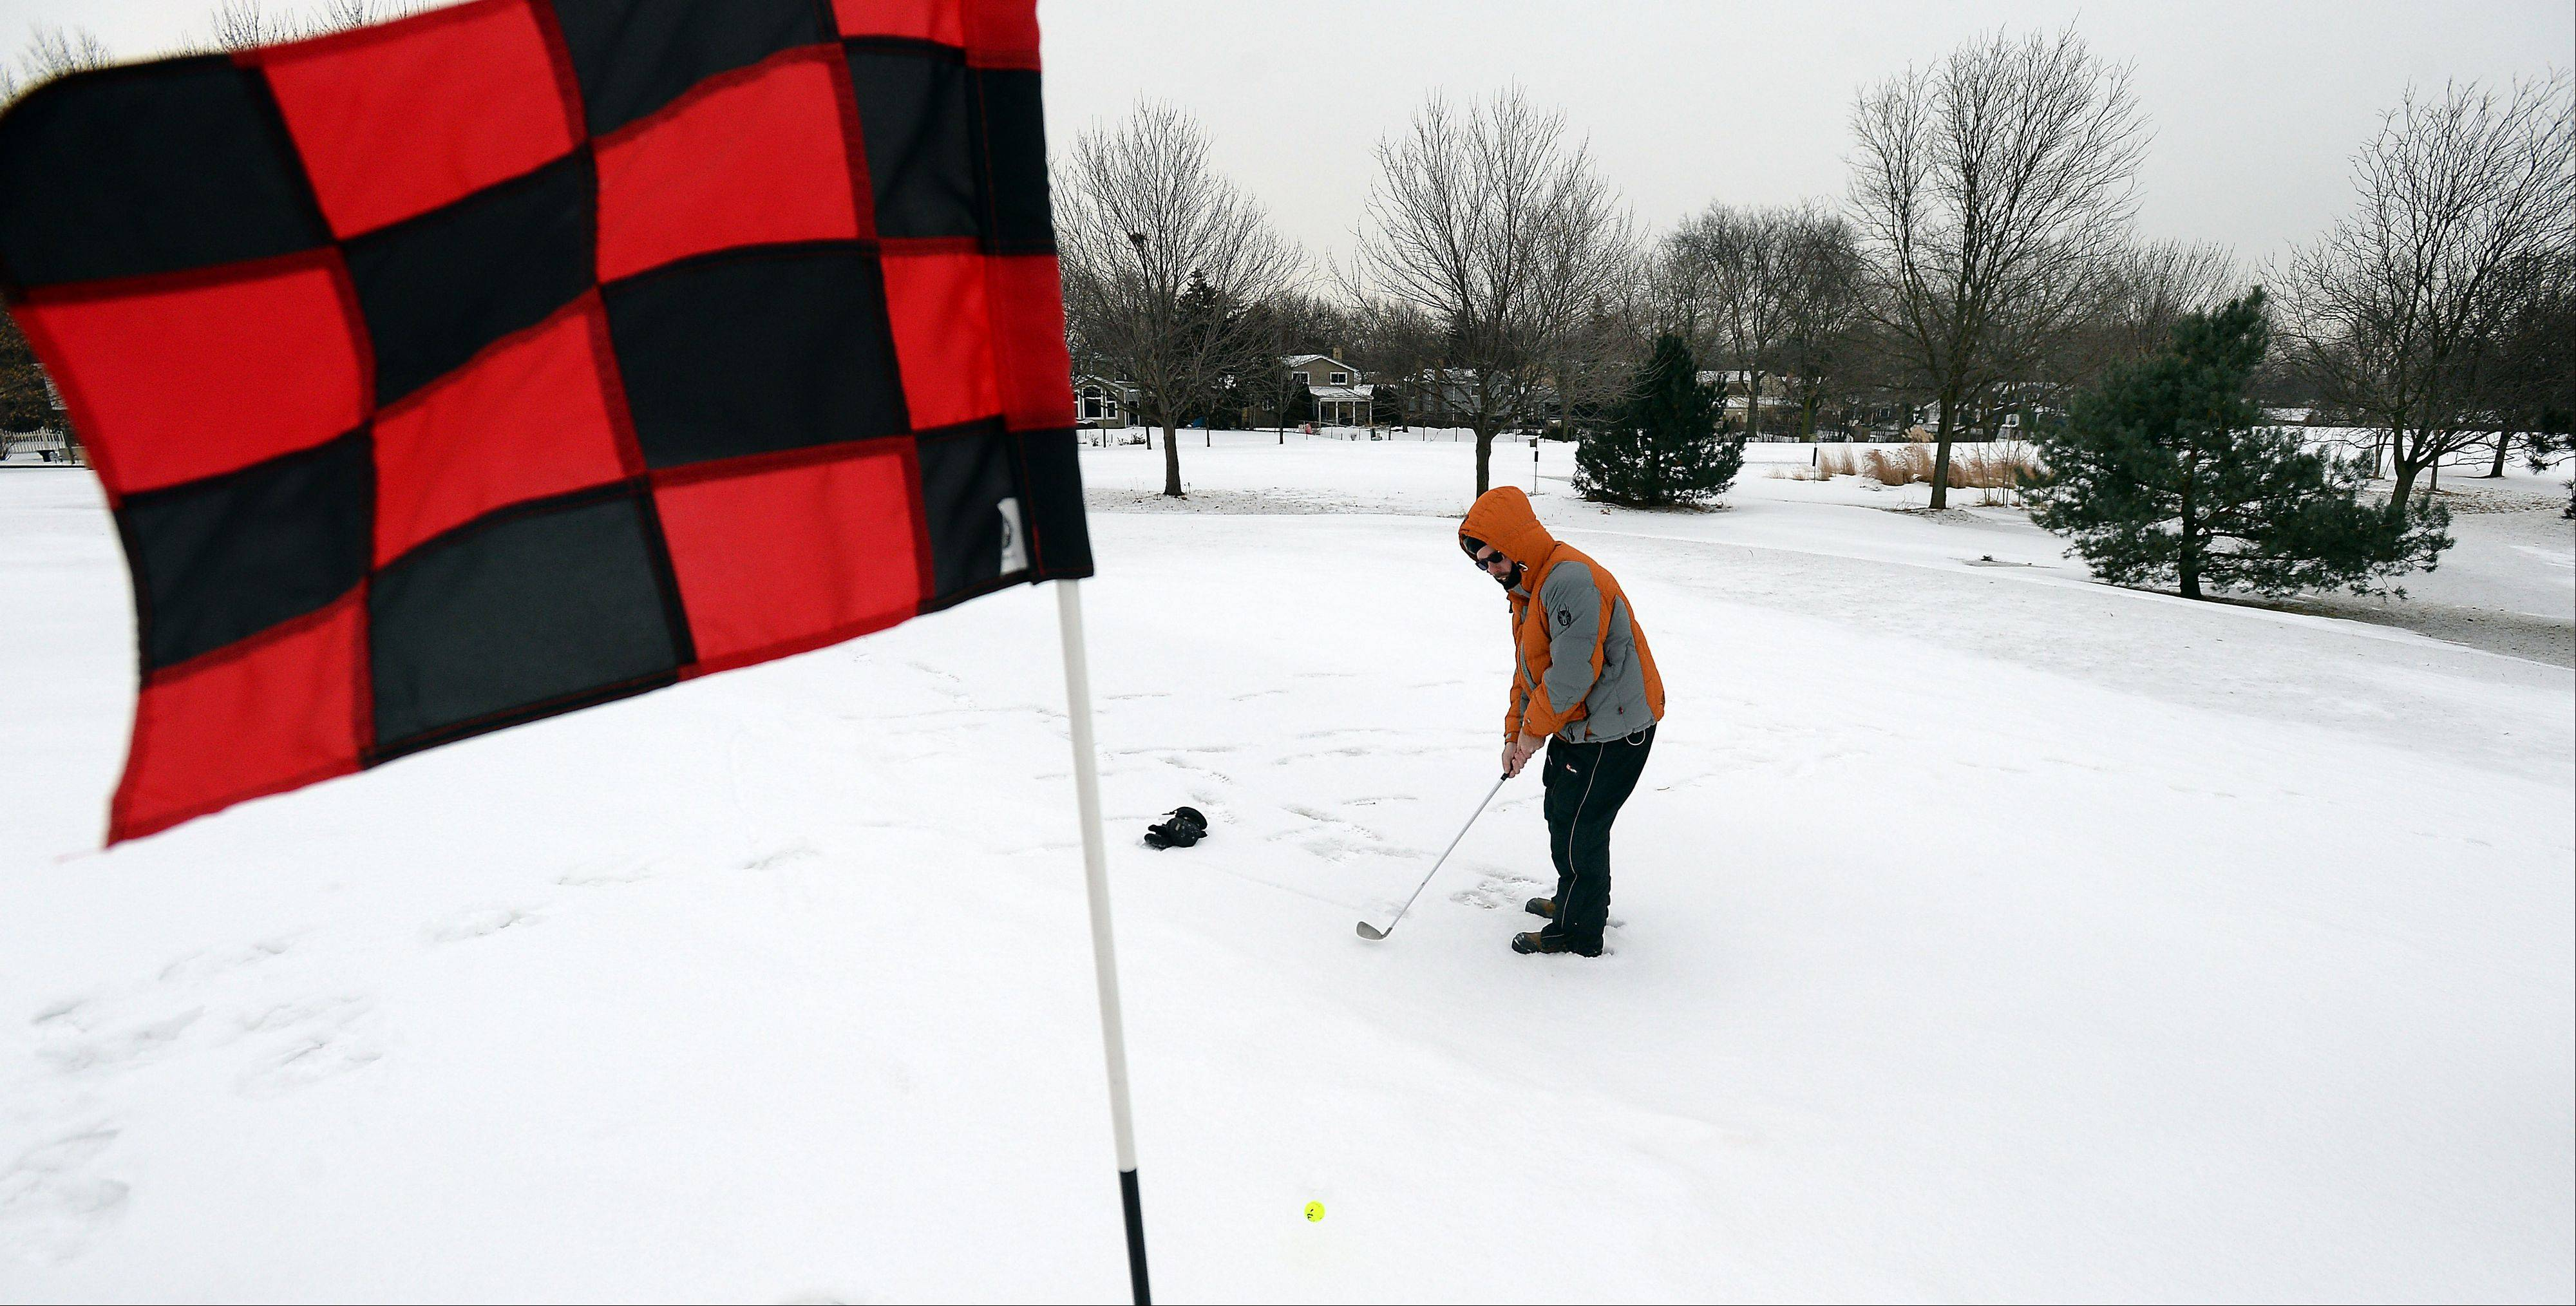 Willie Mills of Roselle chips up from the frozen ground on the 10th hole during the 2014 Chilly Open at Arlington Lakes Golf Club on Saturday.